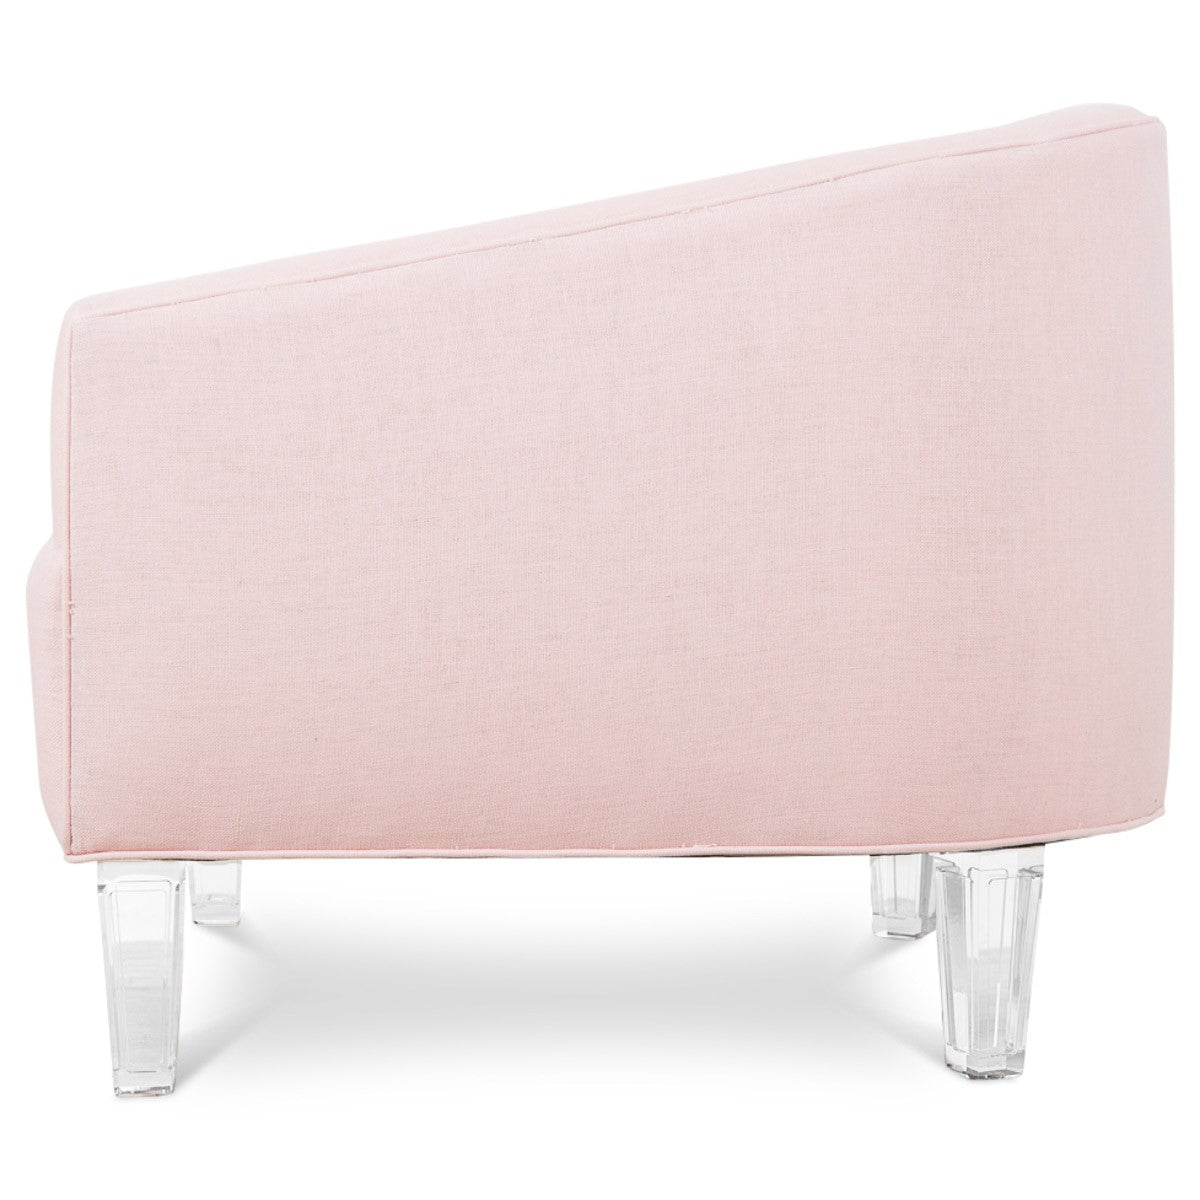 St. Barts Chair in Rose - ModShop1.com